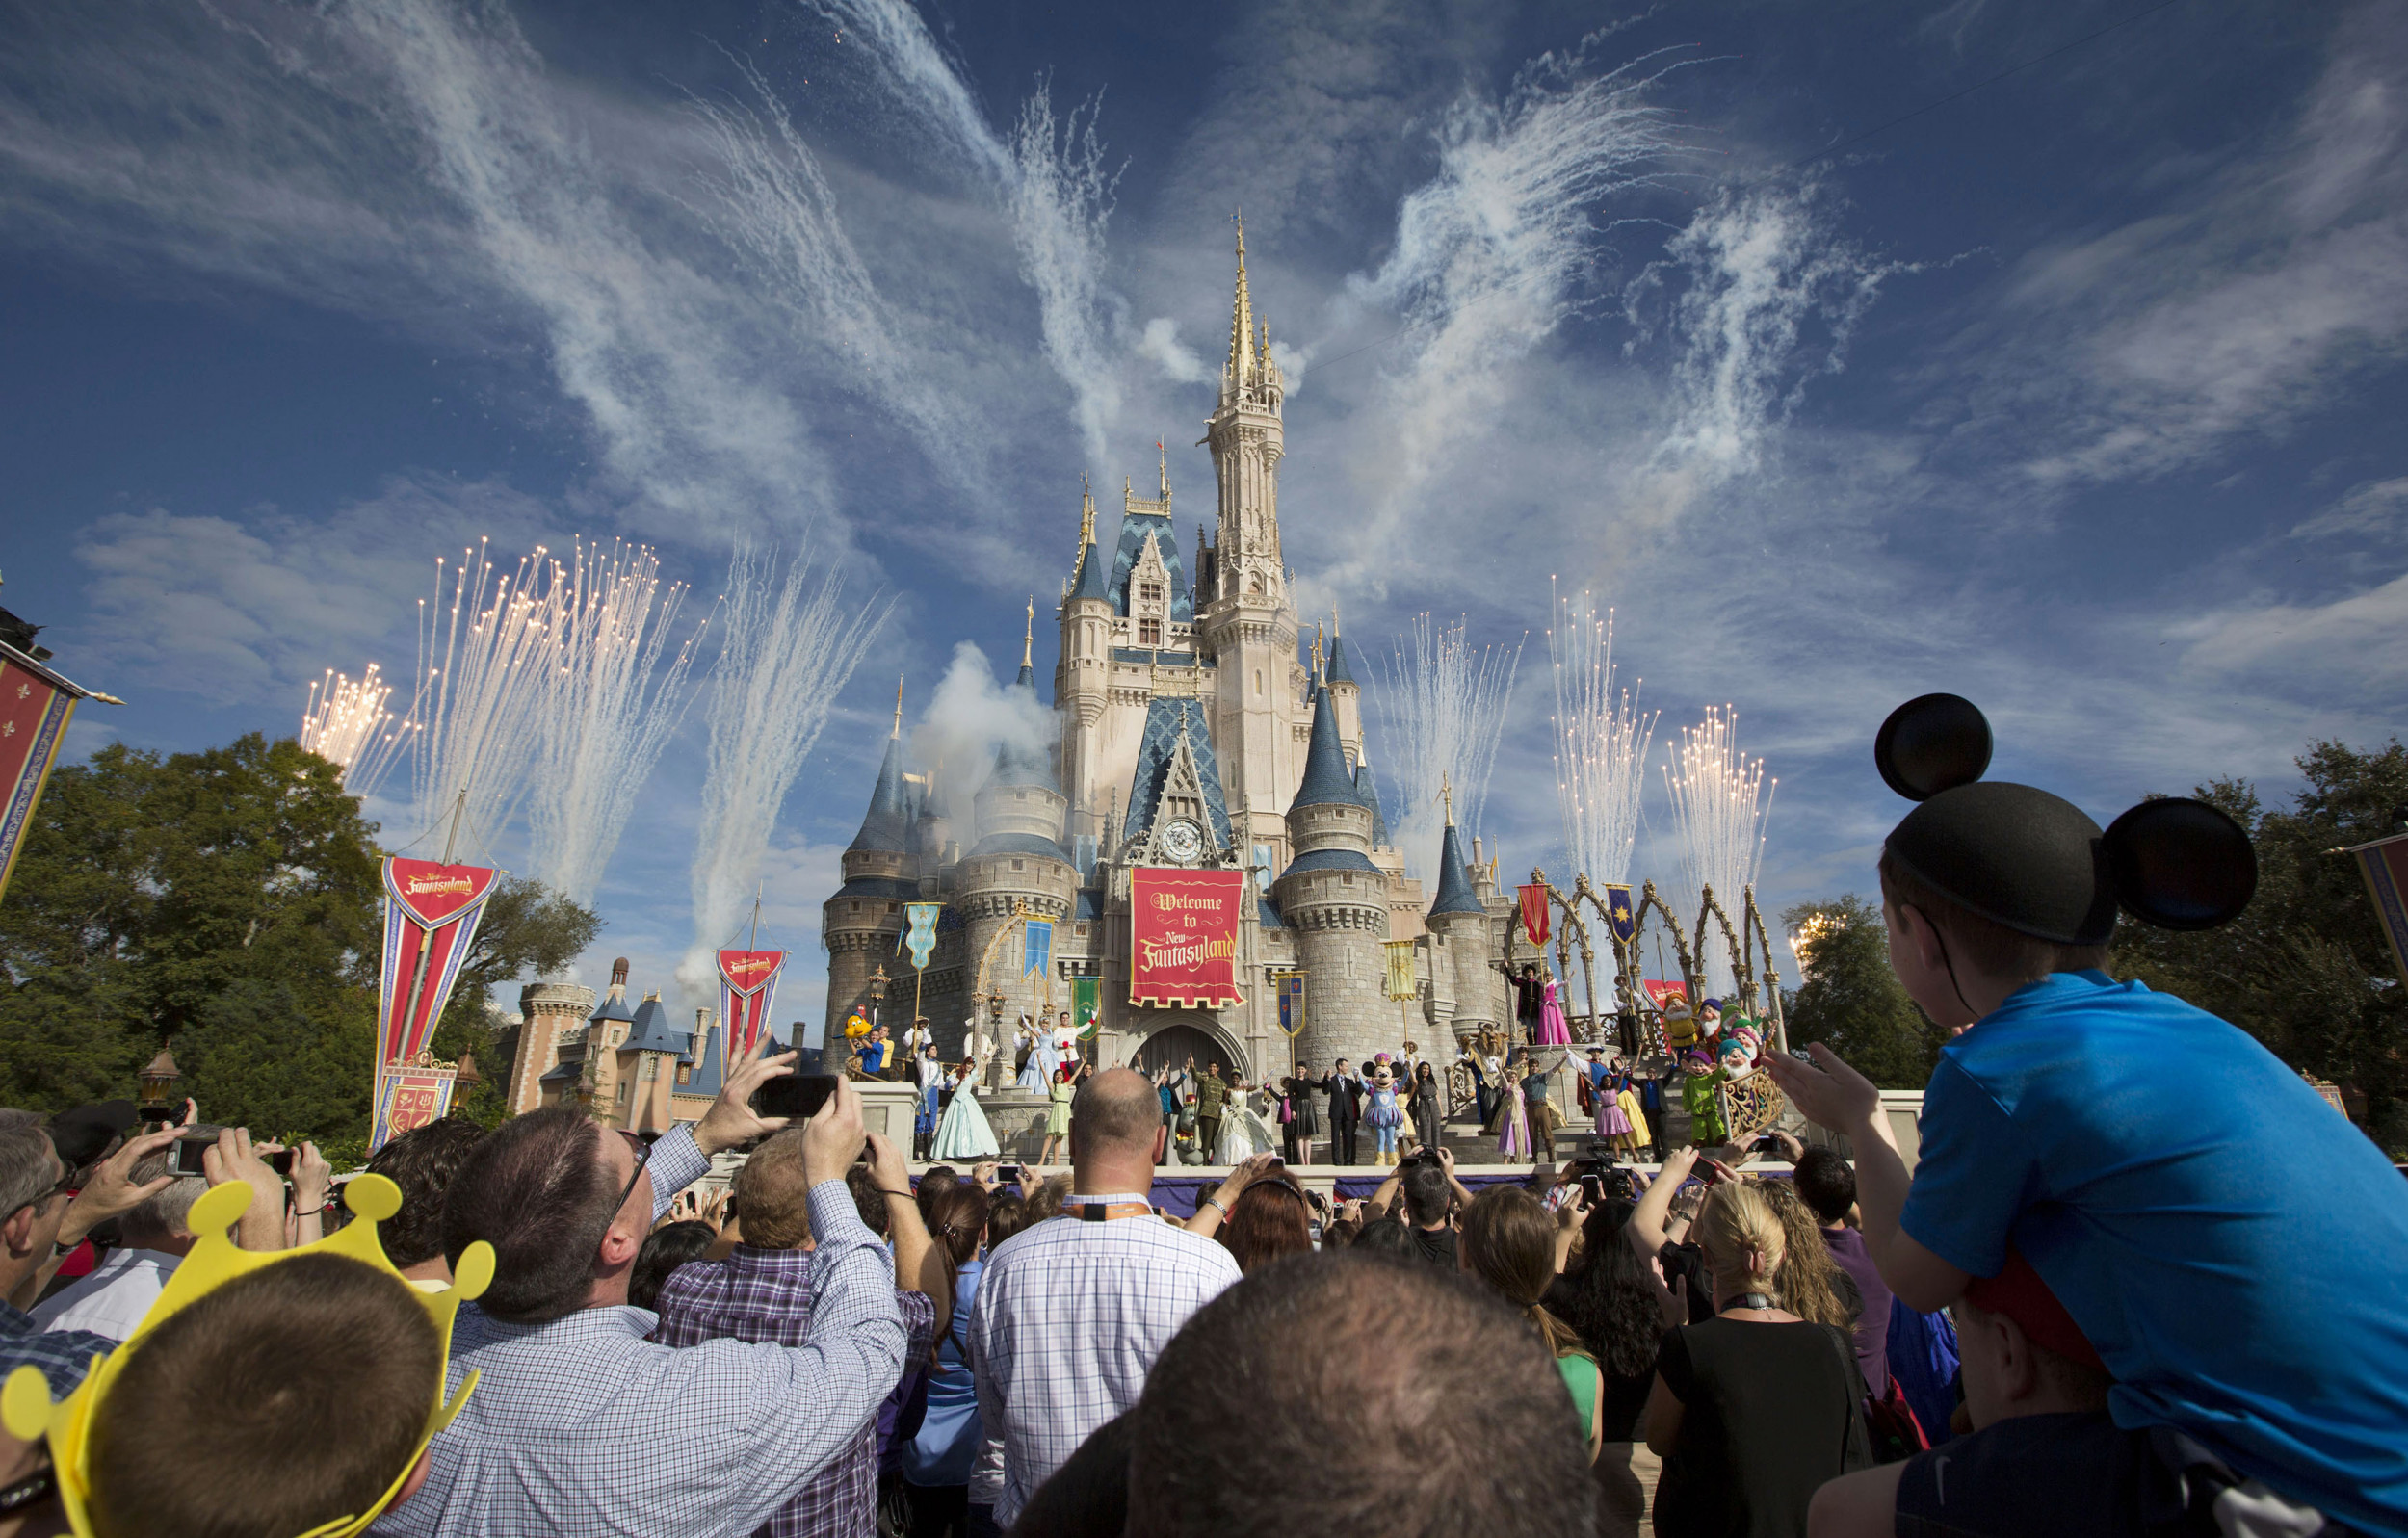 NBA players to have exclusive access to Disney World after-hours